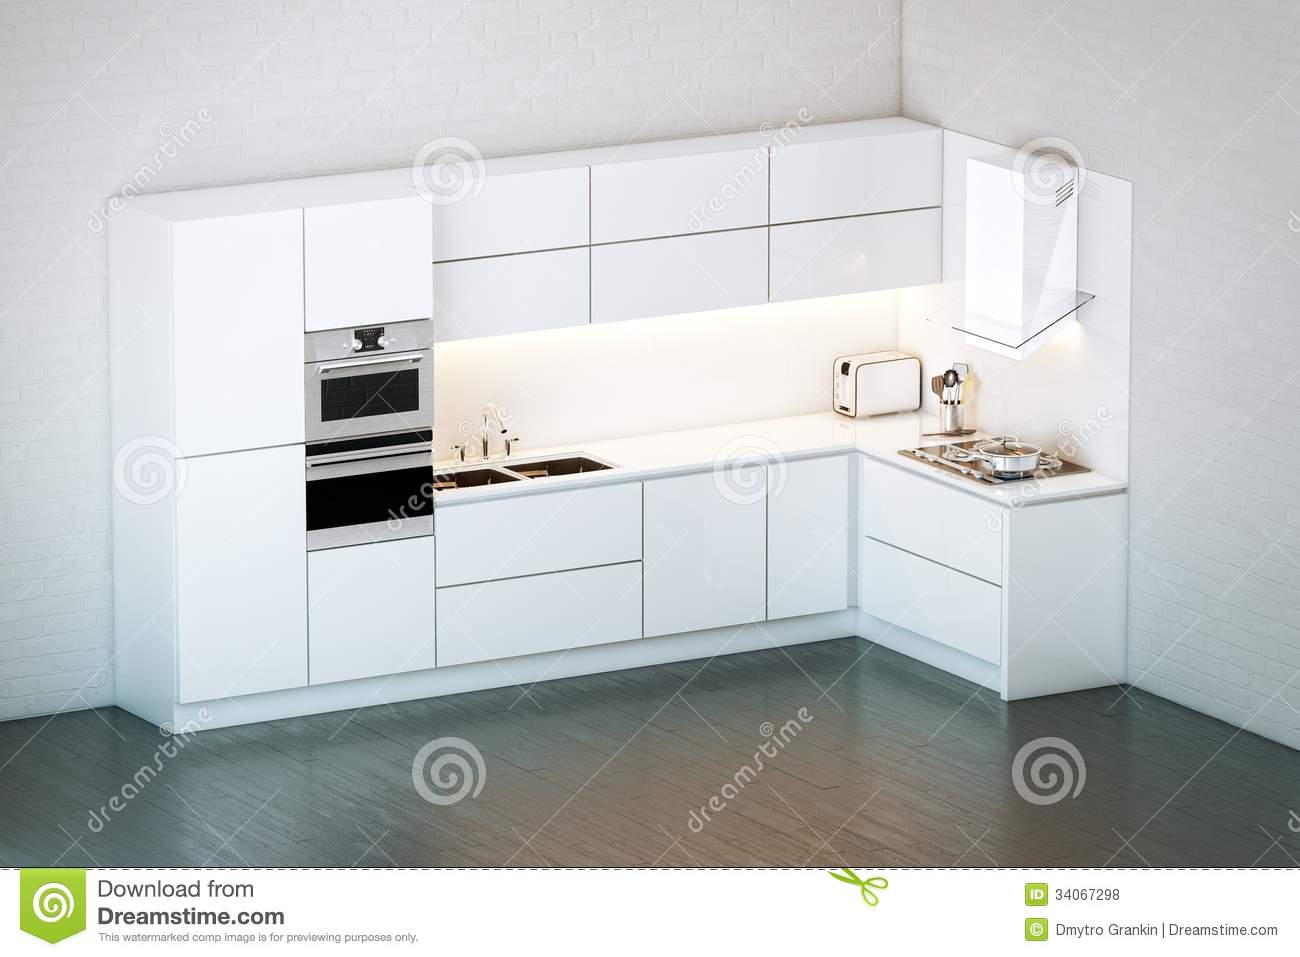 Luxury white kitchen in minimalist style stock for Cuisine minimaliste design